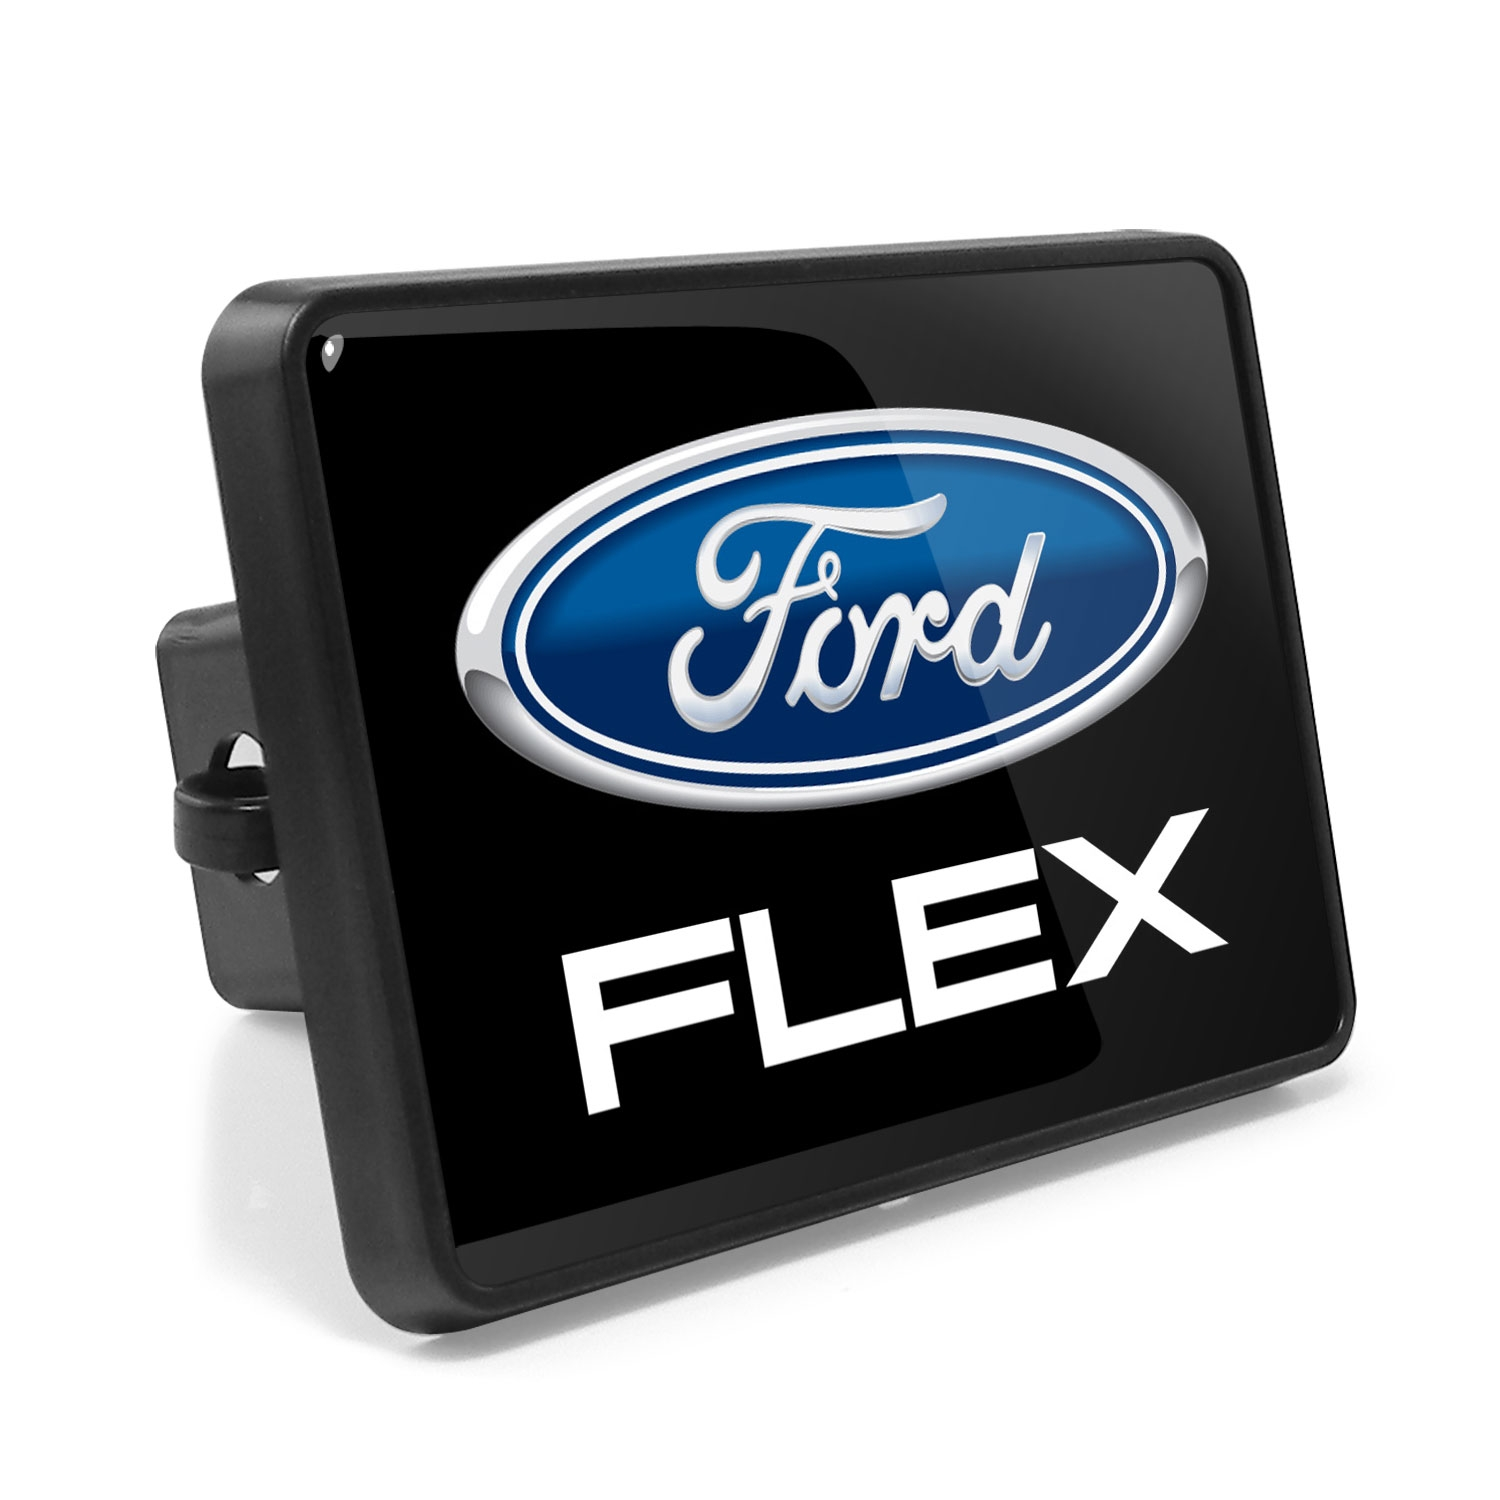 Ford Flex UV Graphic Metal Plate on ABS Plastic 2 inch Tow Hitch Cover